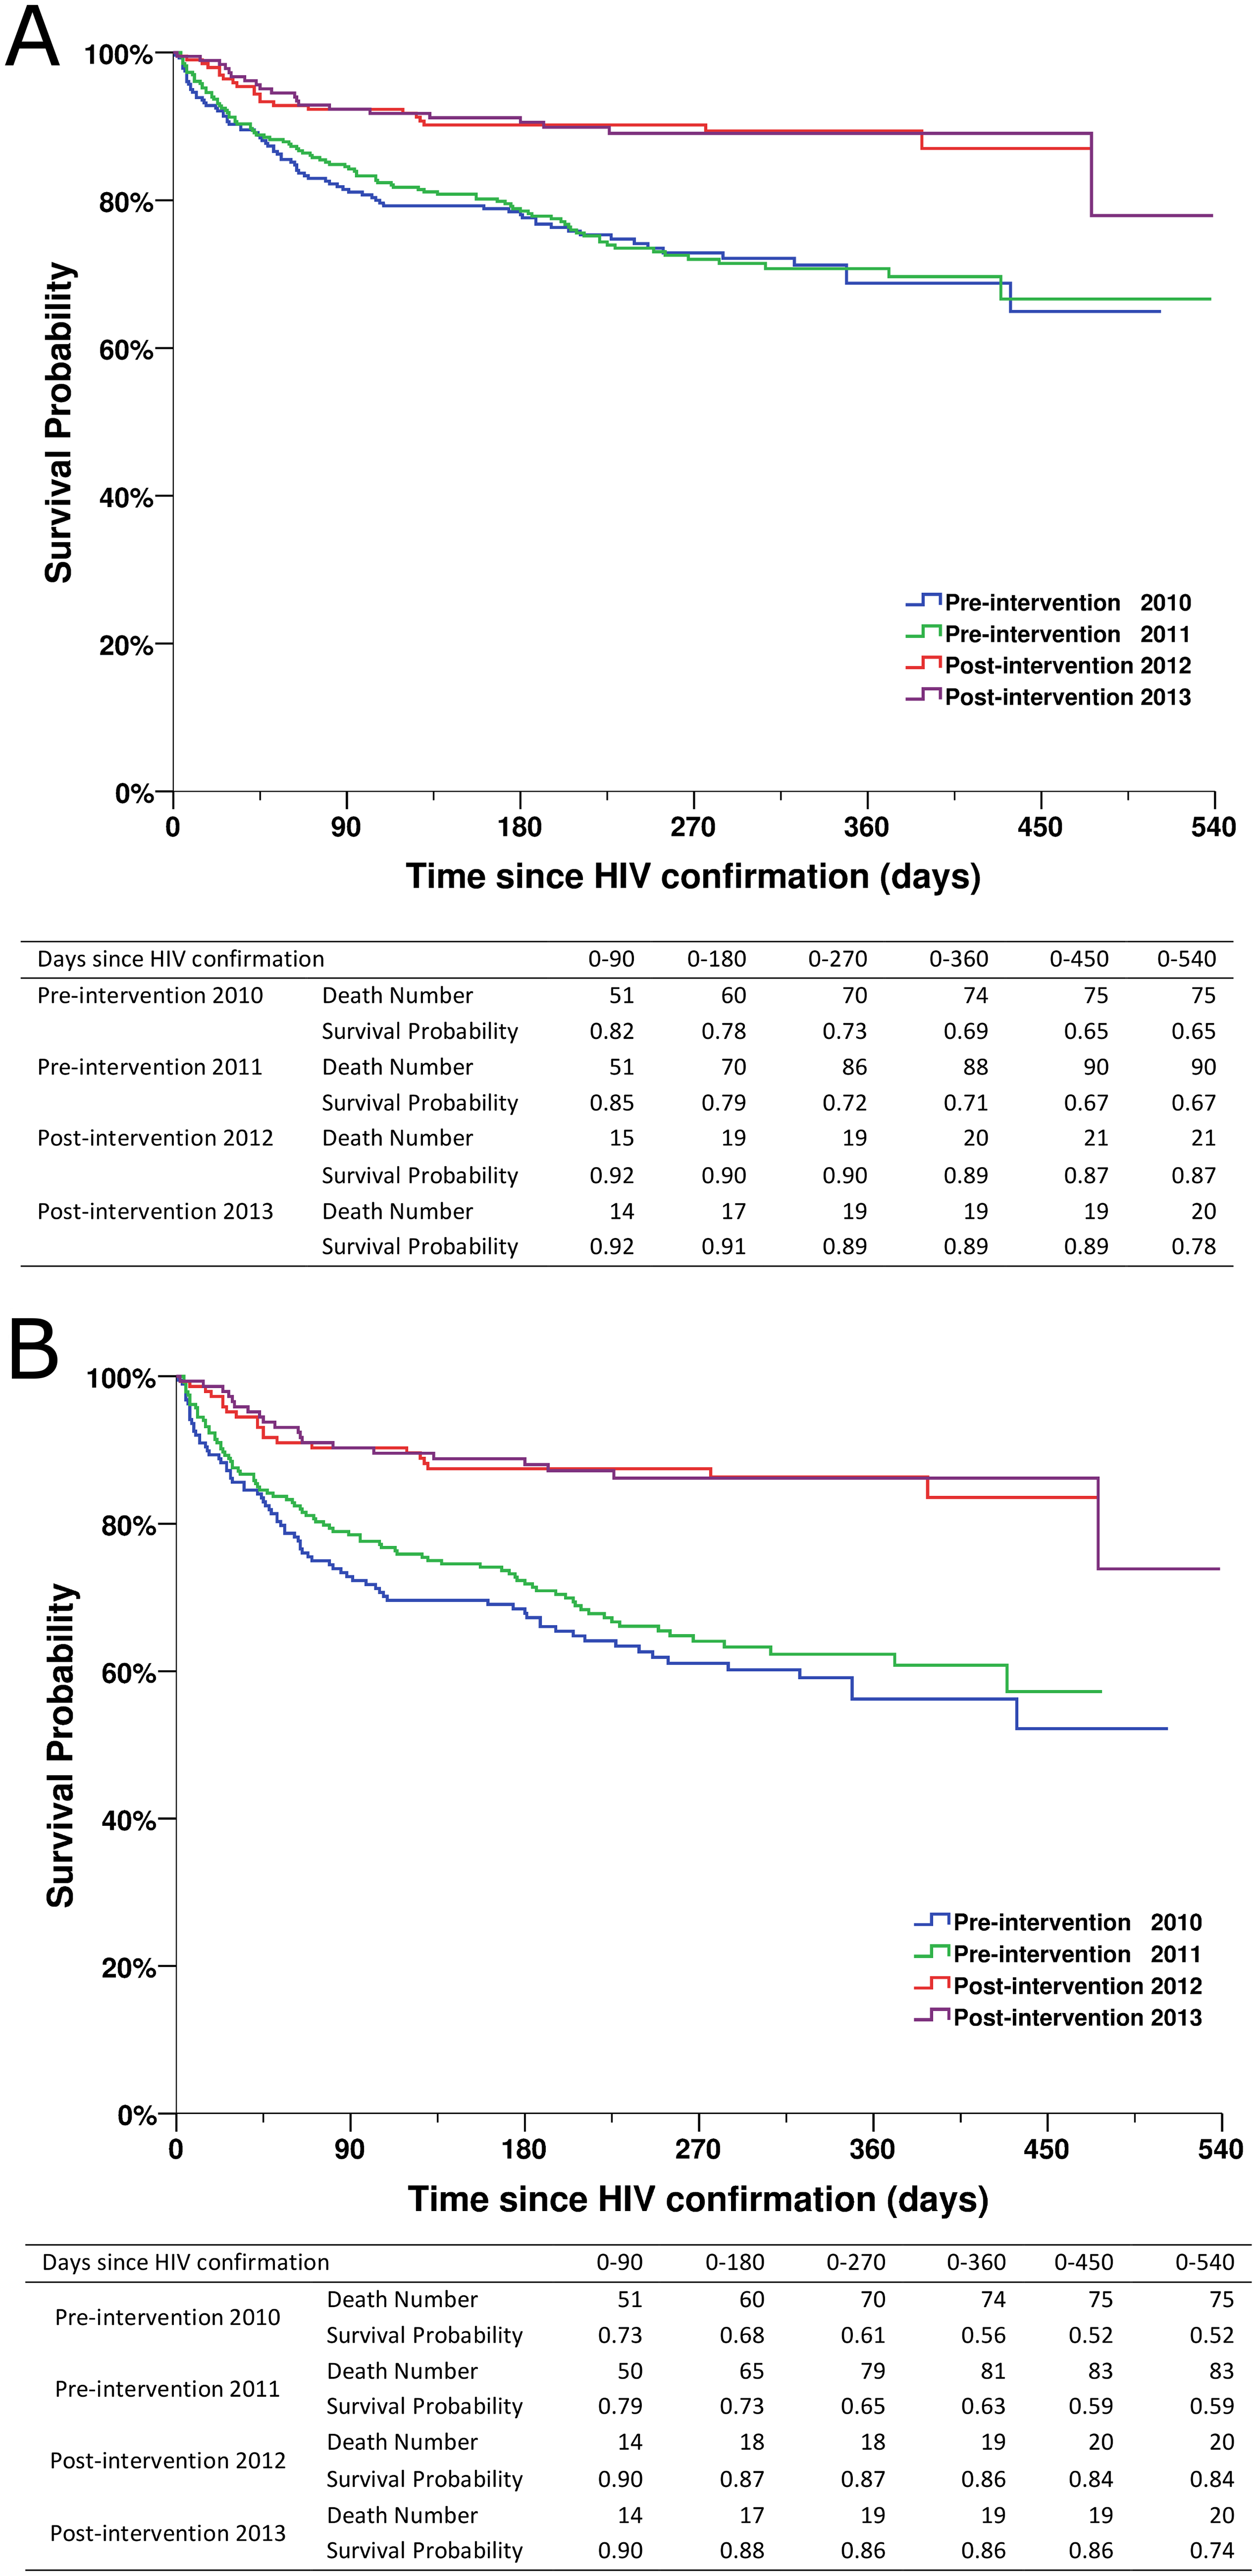 Kaplan-Meier survival curves for newly diagnosed HIV cases in the pre-intervention 2010, pre-intervention 2011, post-intervention 2012, and post-intervention 2013 phases in Guangxi, China.